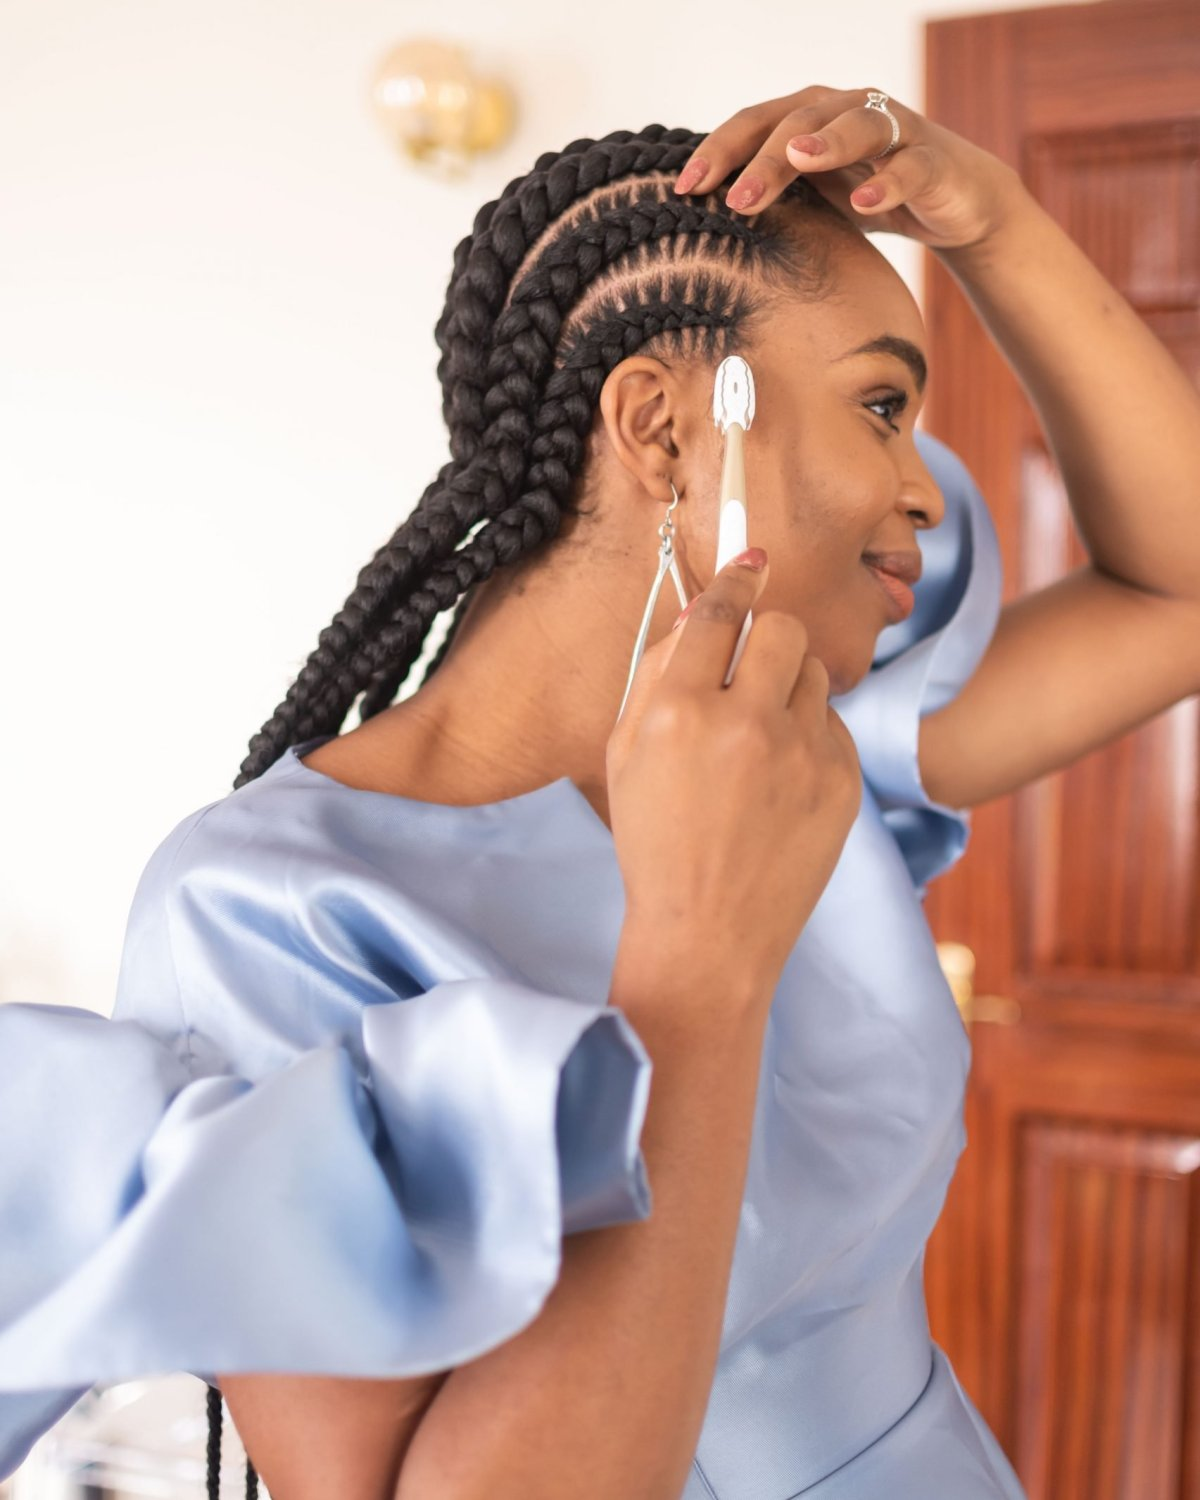 Ijeoma Kola laying edges with toothbrush - how to recycle